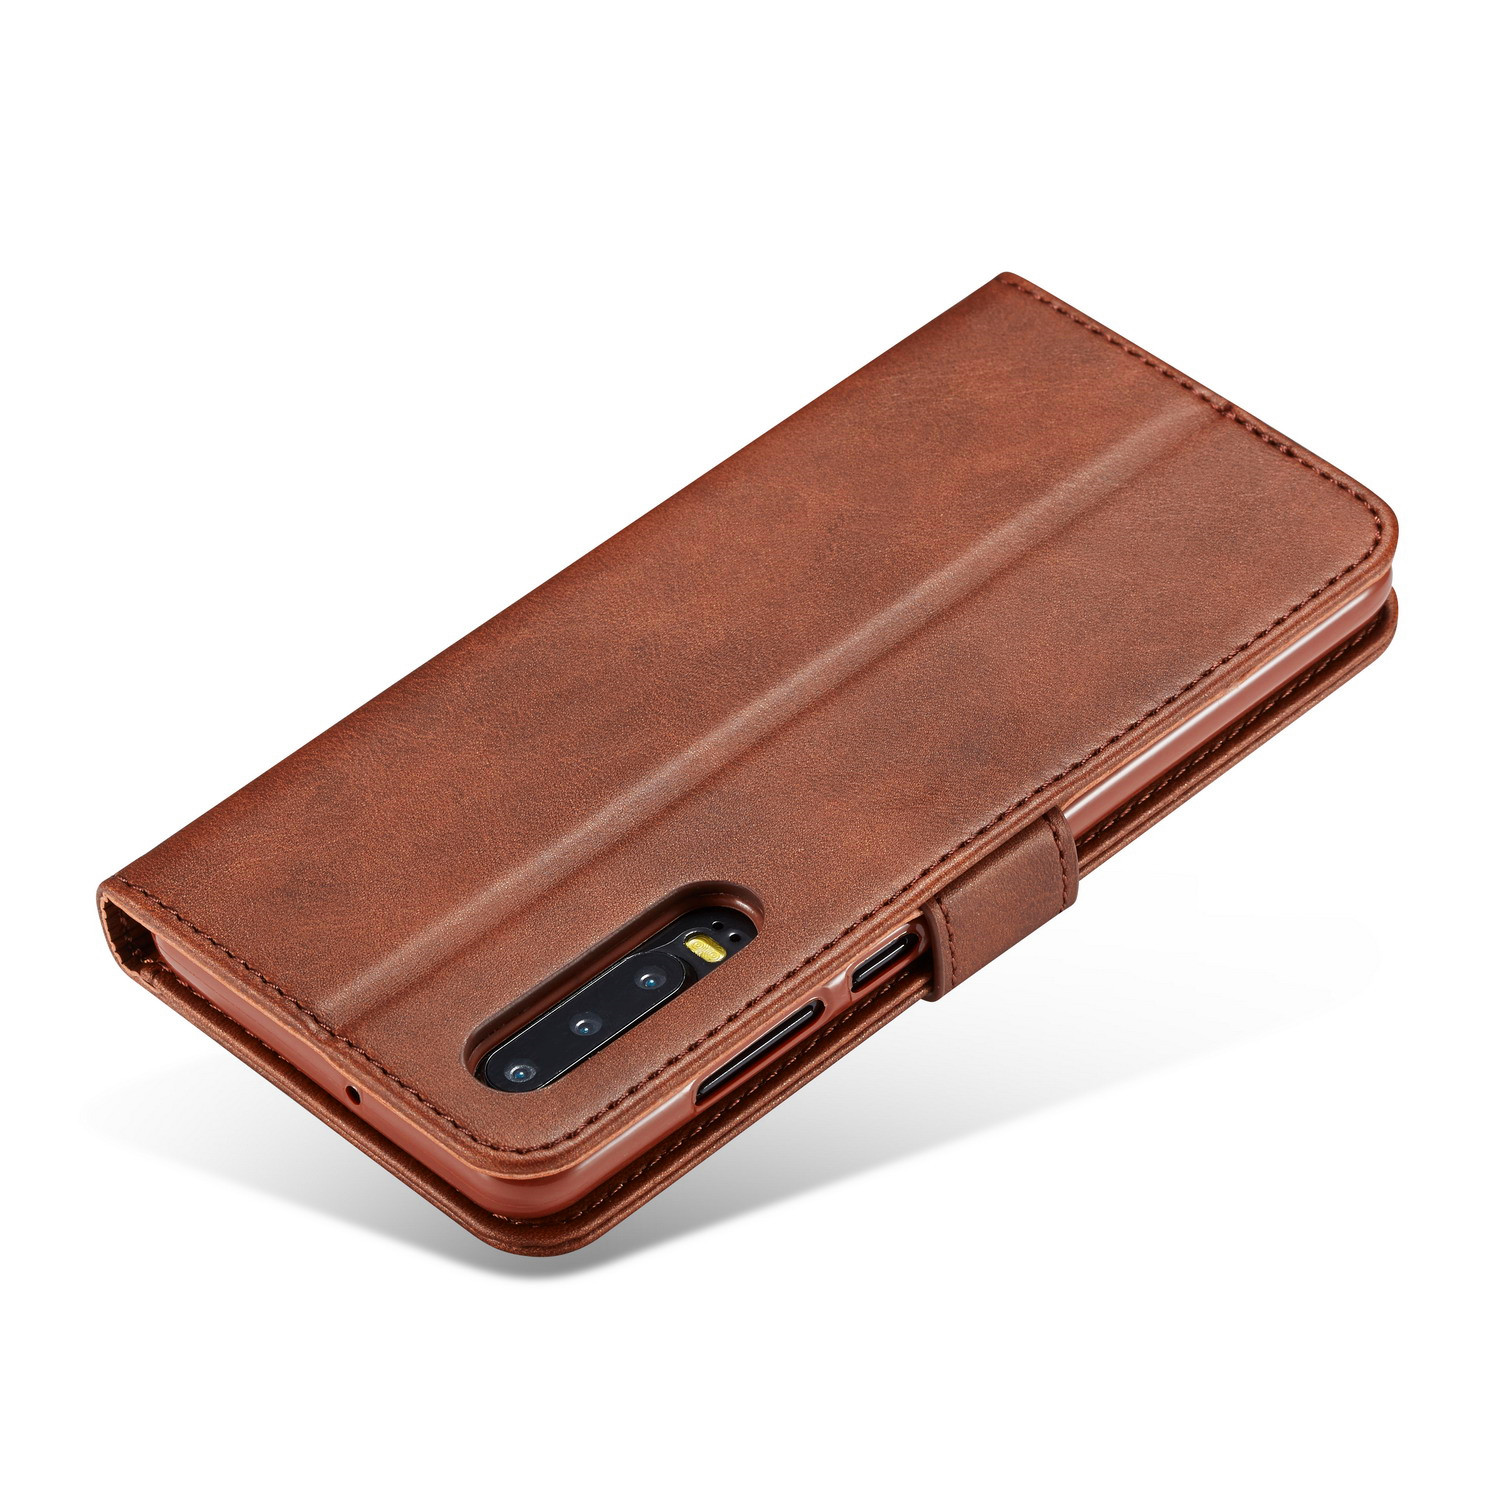 Magneticather Phone Case For Huawei P30 P20 P10 P9 Mate 20 Mate 10 lite P30 P20 Mate 20 Mate 10 Pro Cover P smart 2019 Case etui